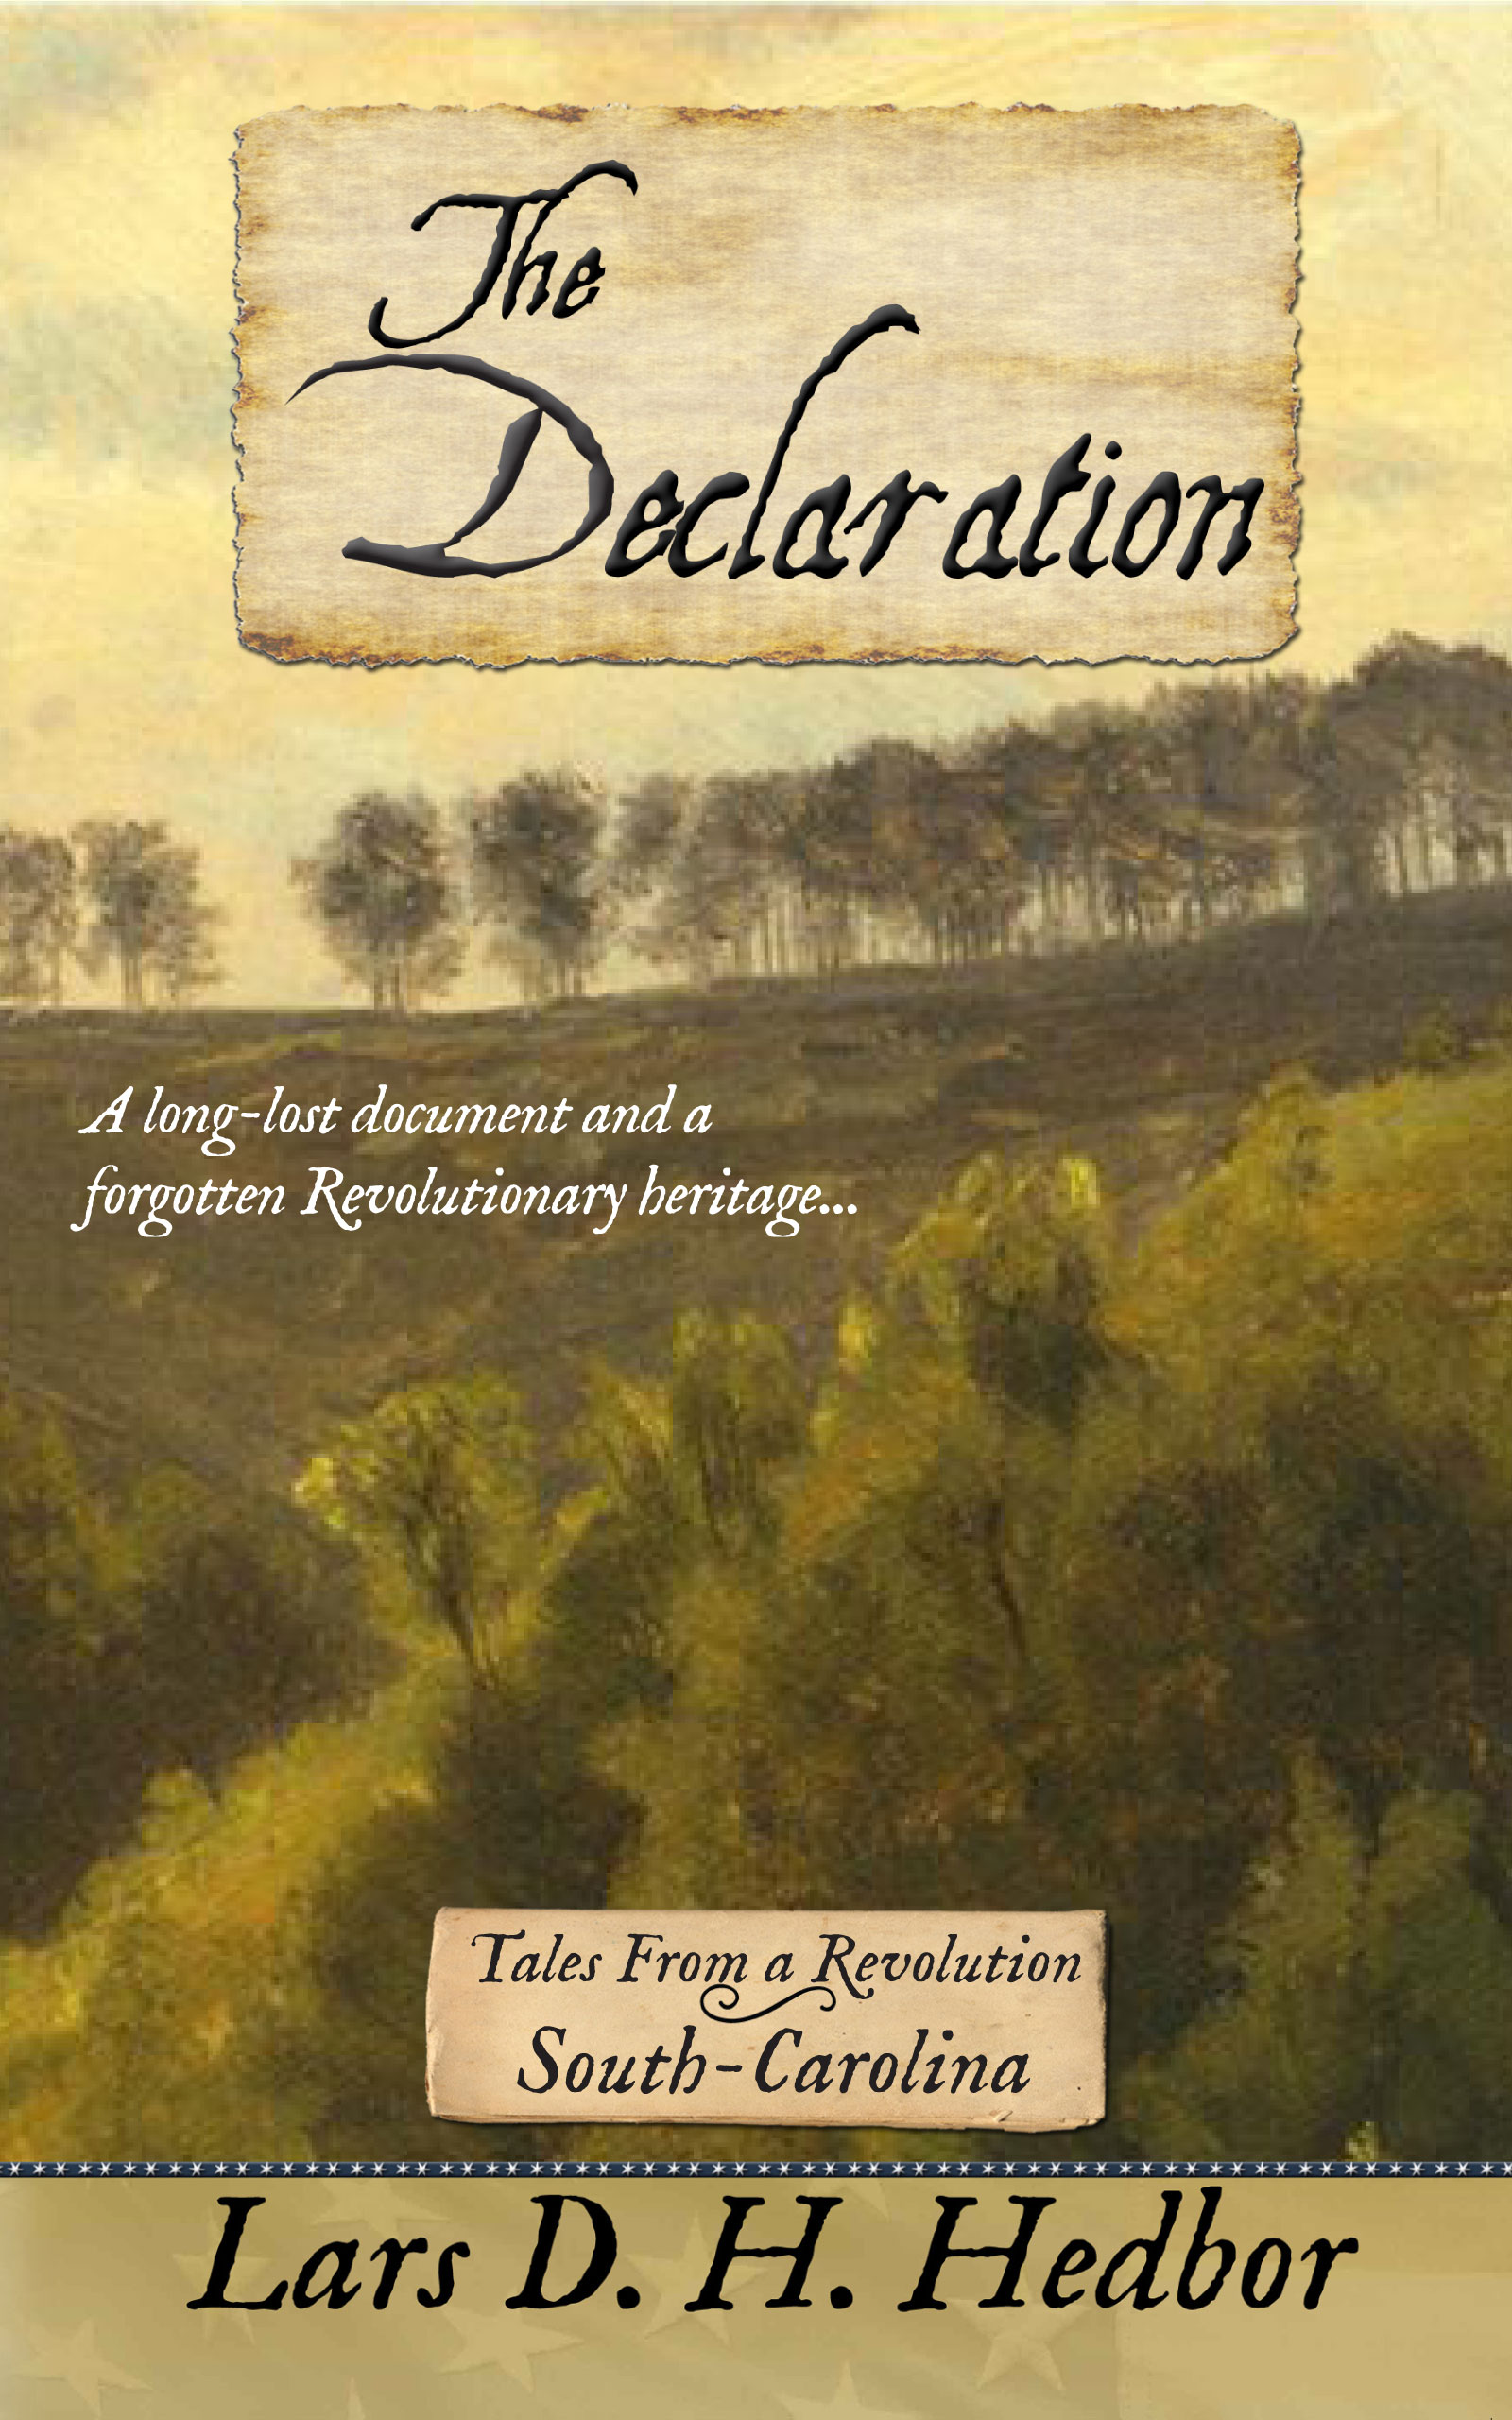 Cover image for The Declaration: Tales From a Revolution - South-Carolina